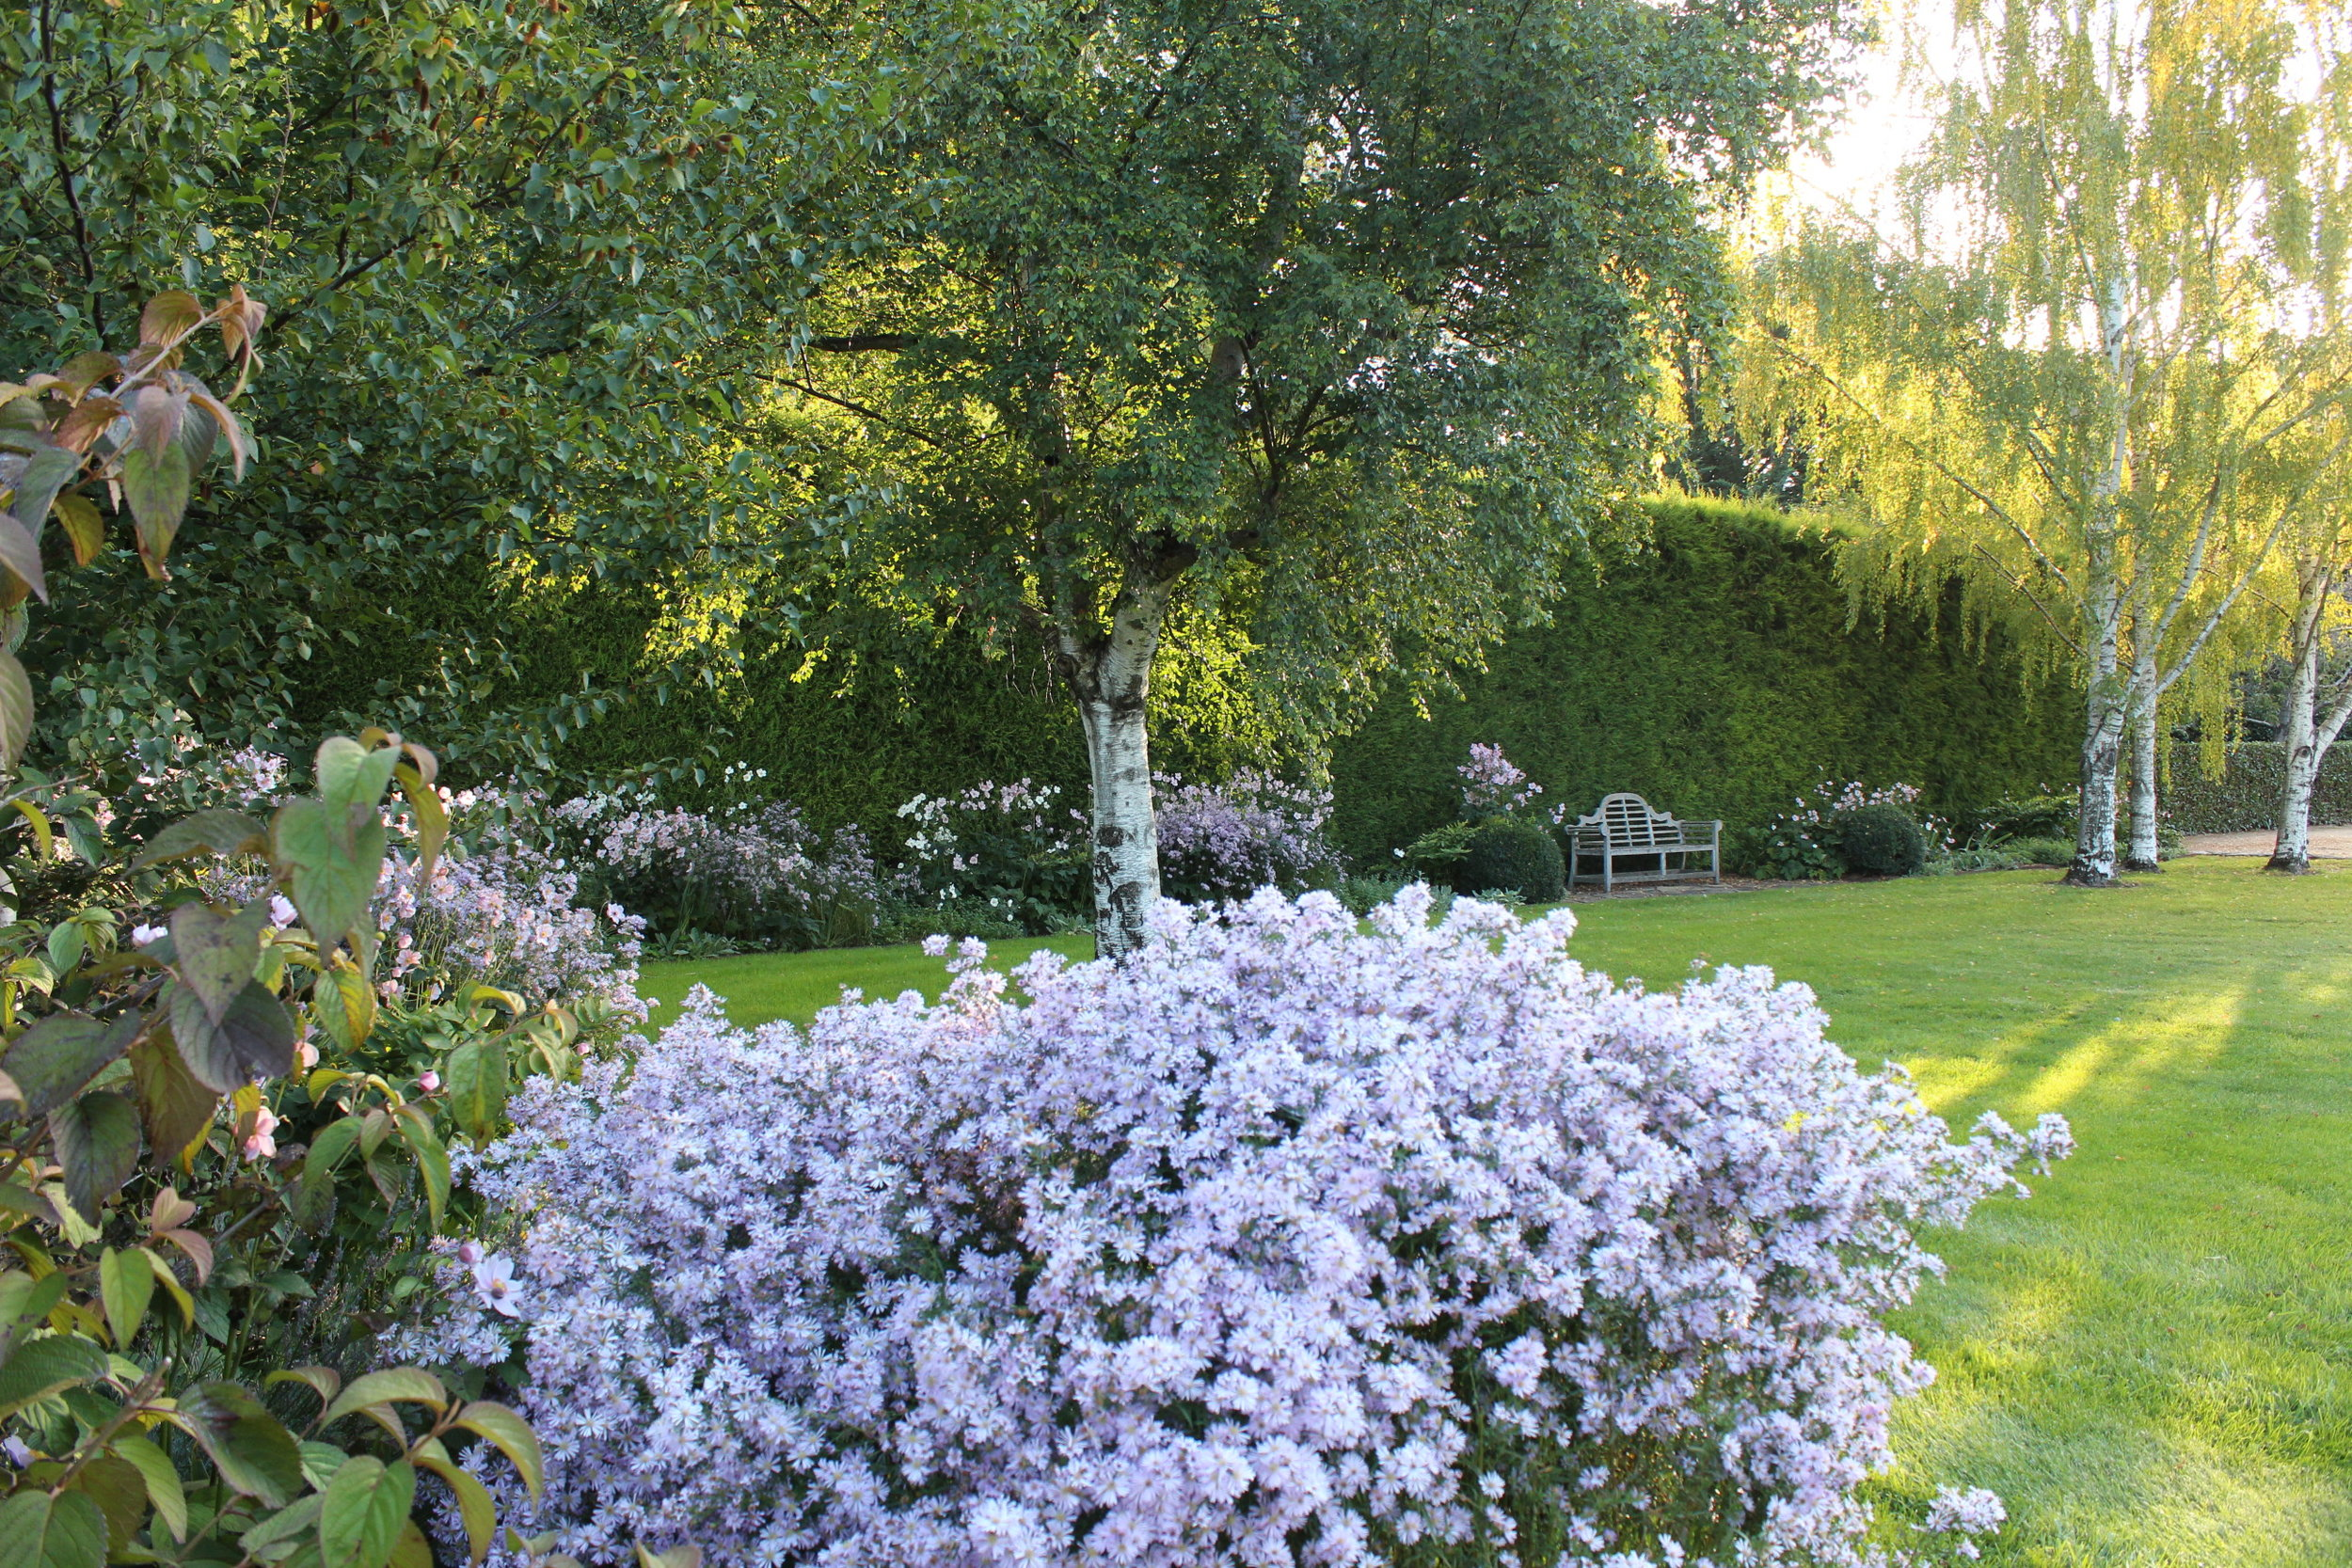 Garden Tours — Private Gardens of the Monaro